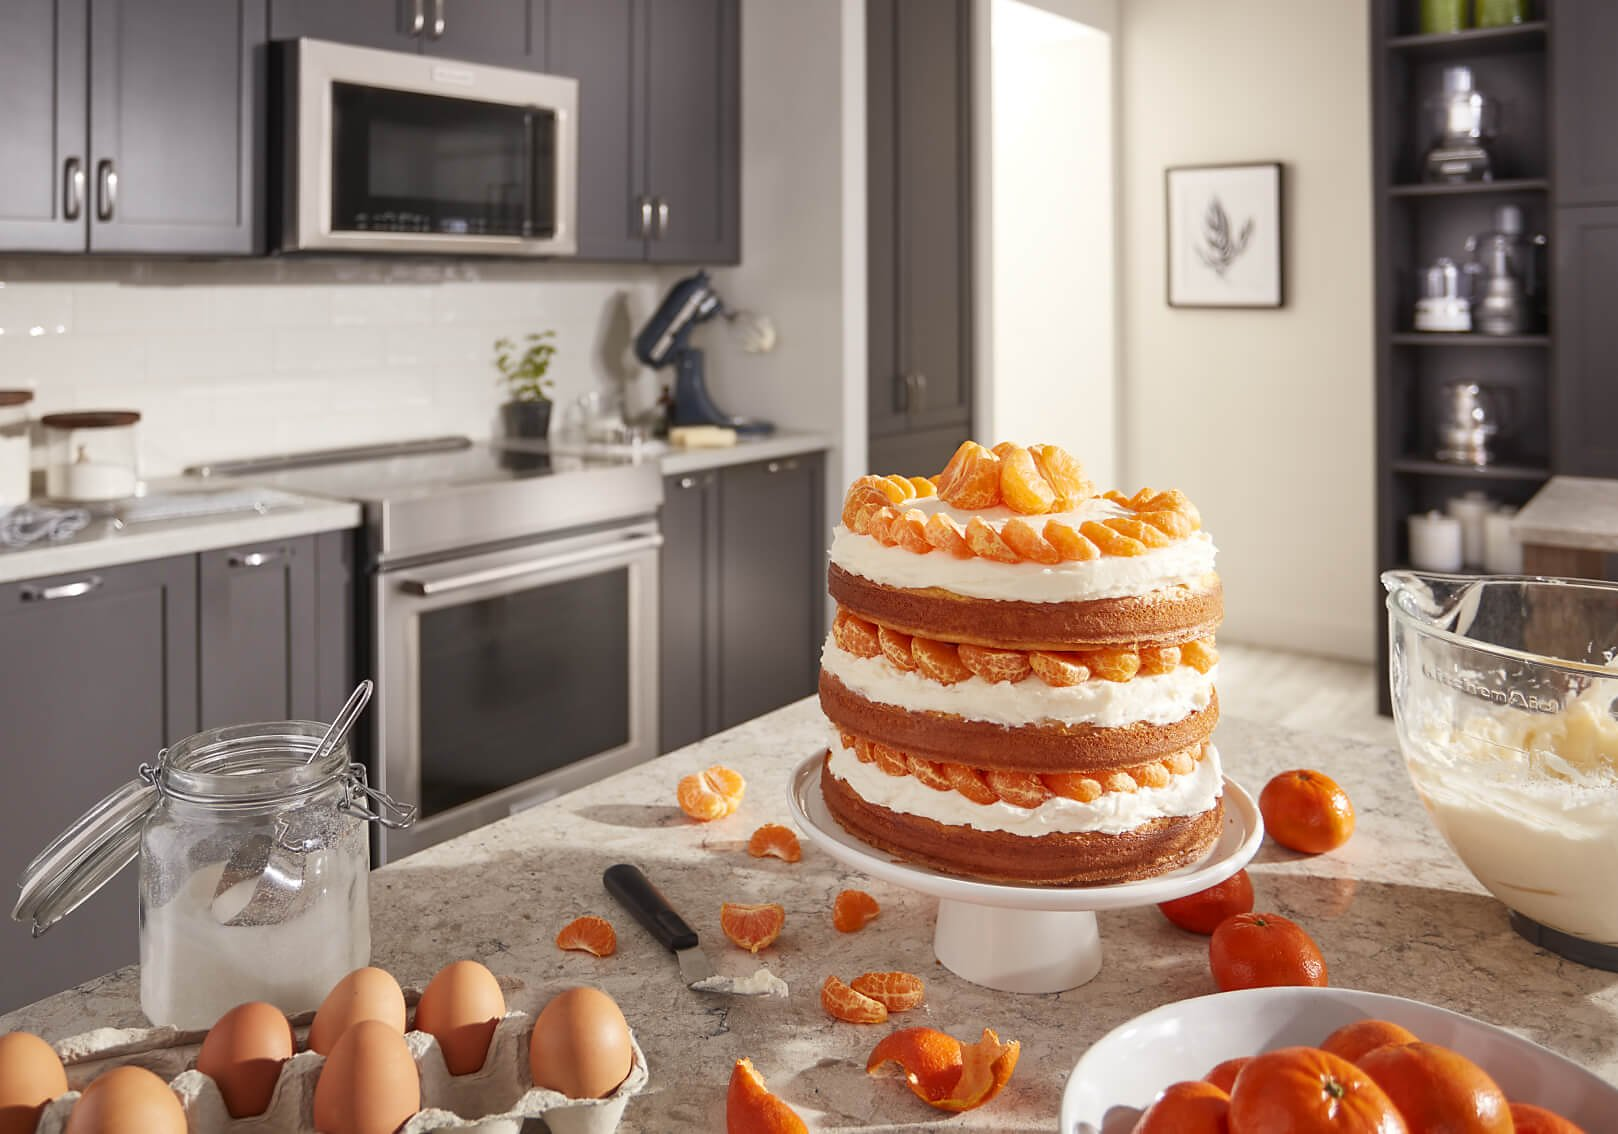 A layered cake with tangerines and cream